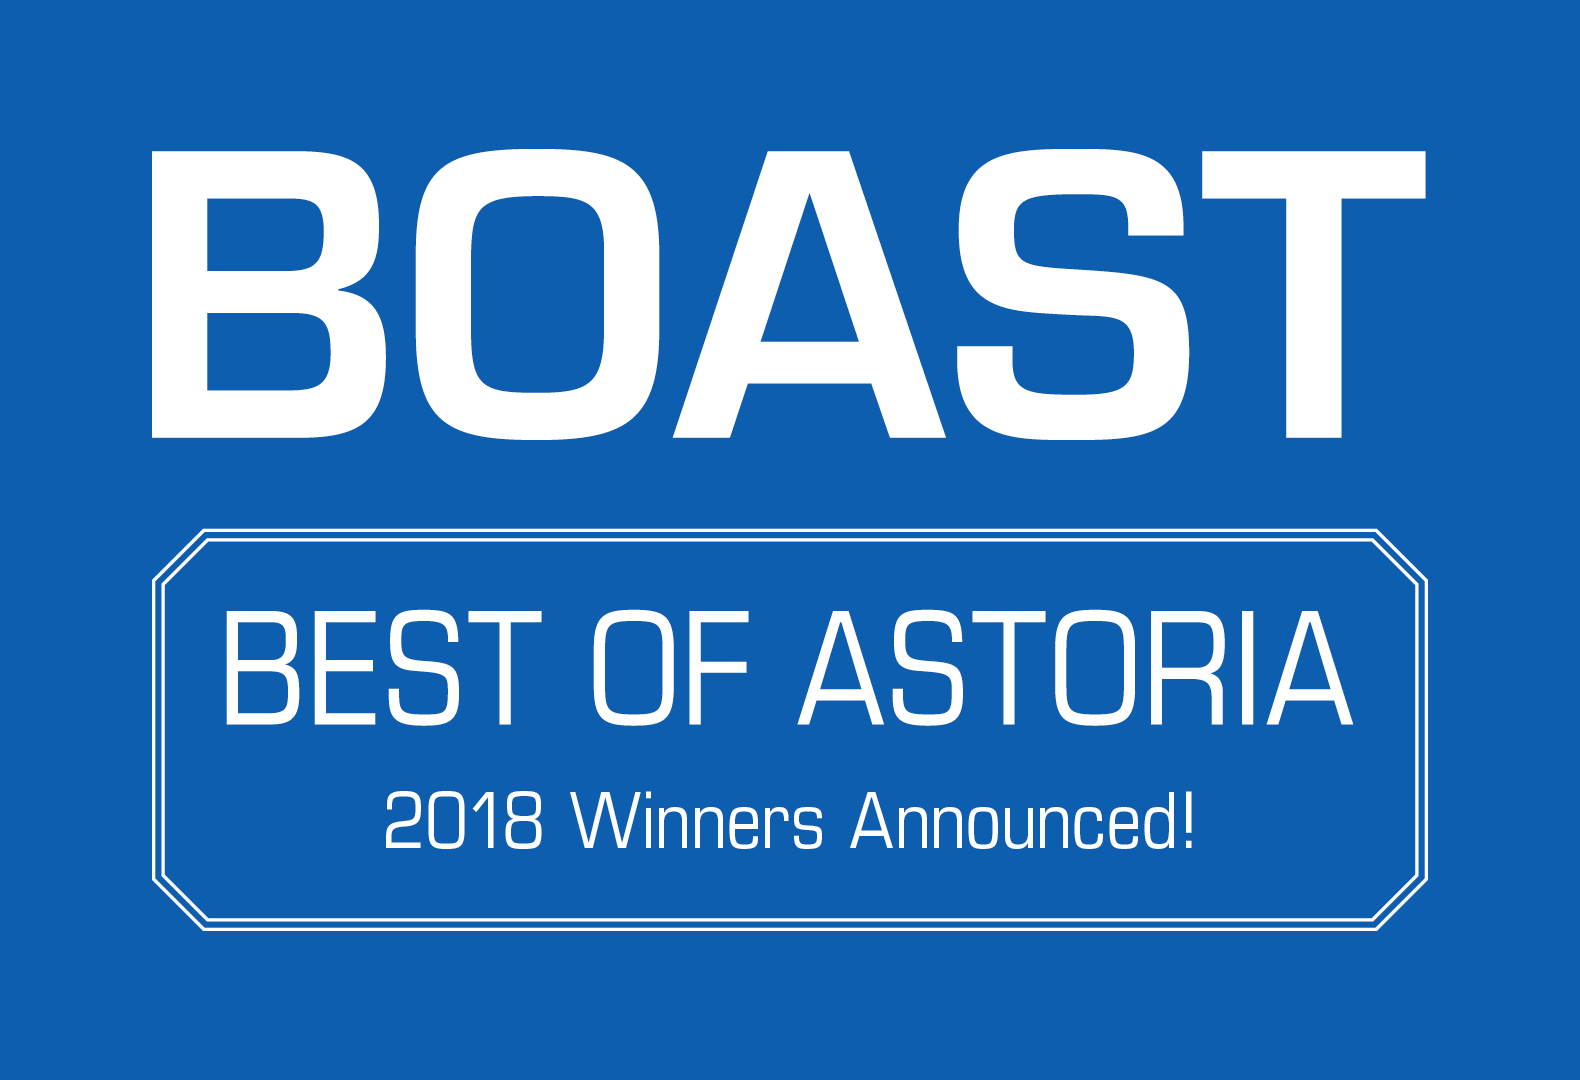 BOAST-2018-Winners-Announced